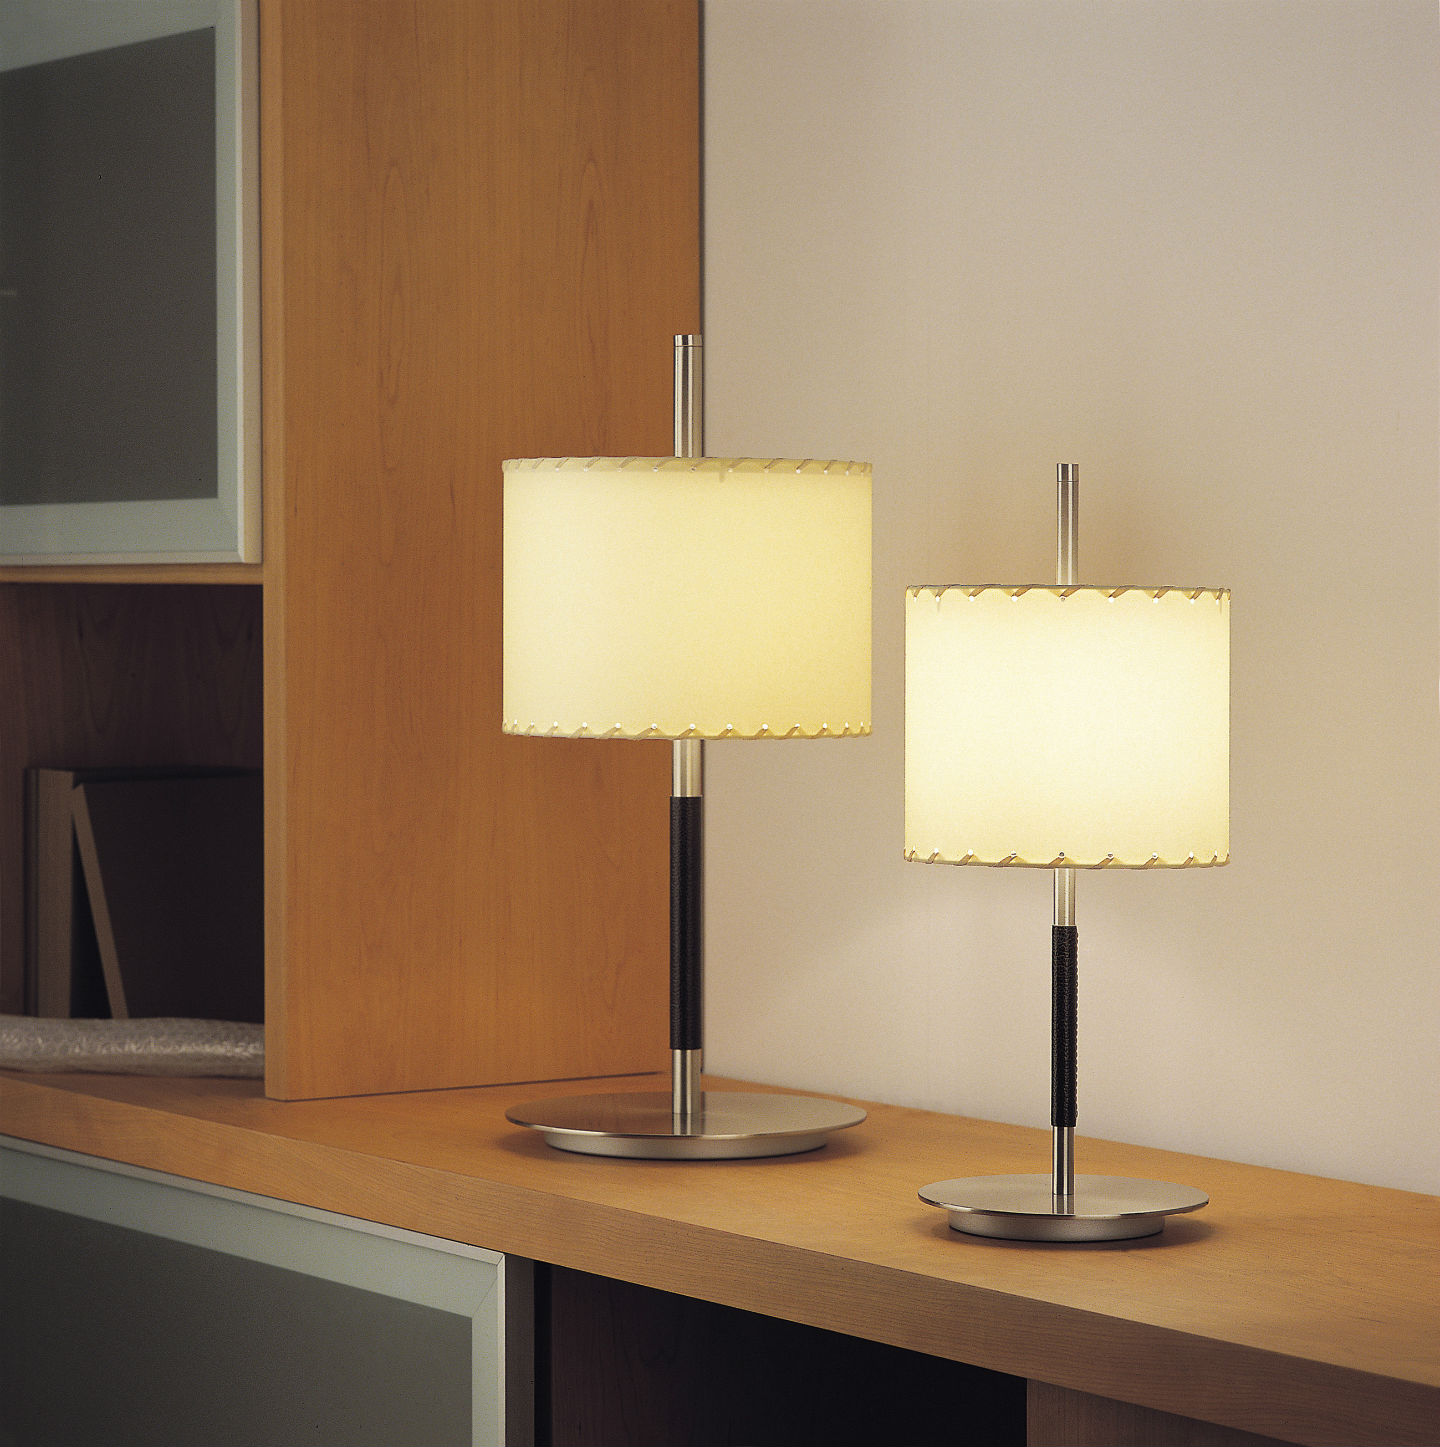 Danona - Mini (Solo Structure) Table Lamp without lampshade E27 46w Ní­quel Satin